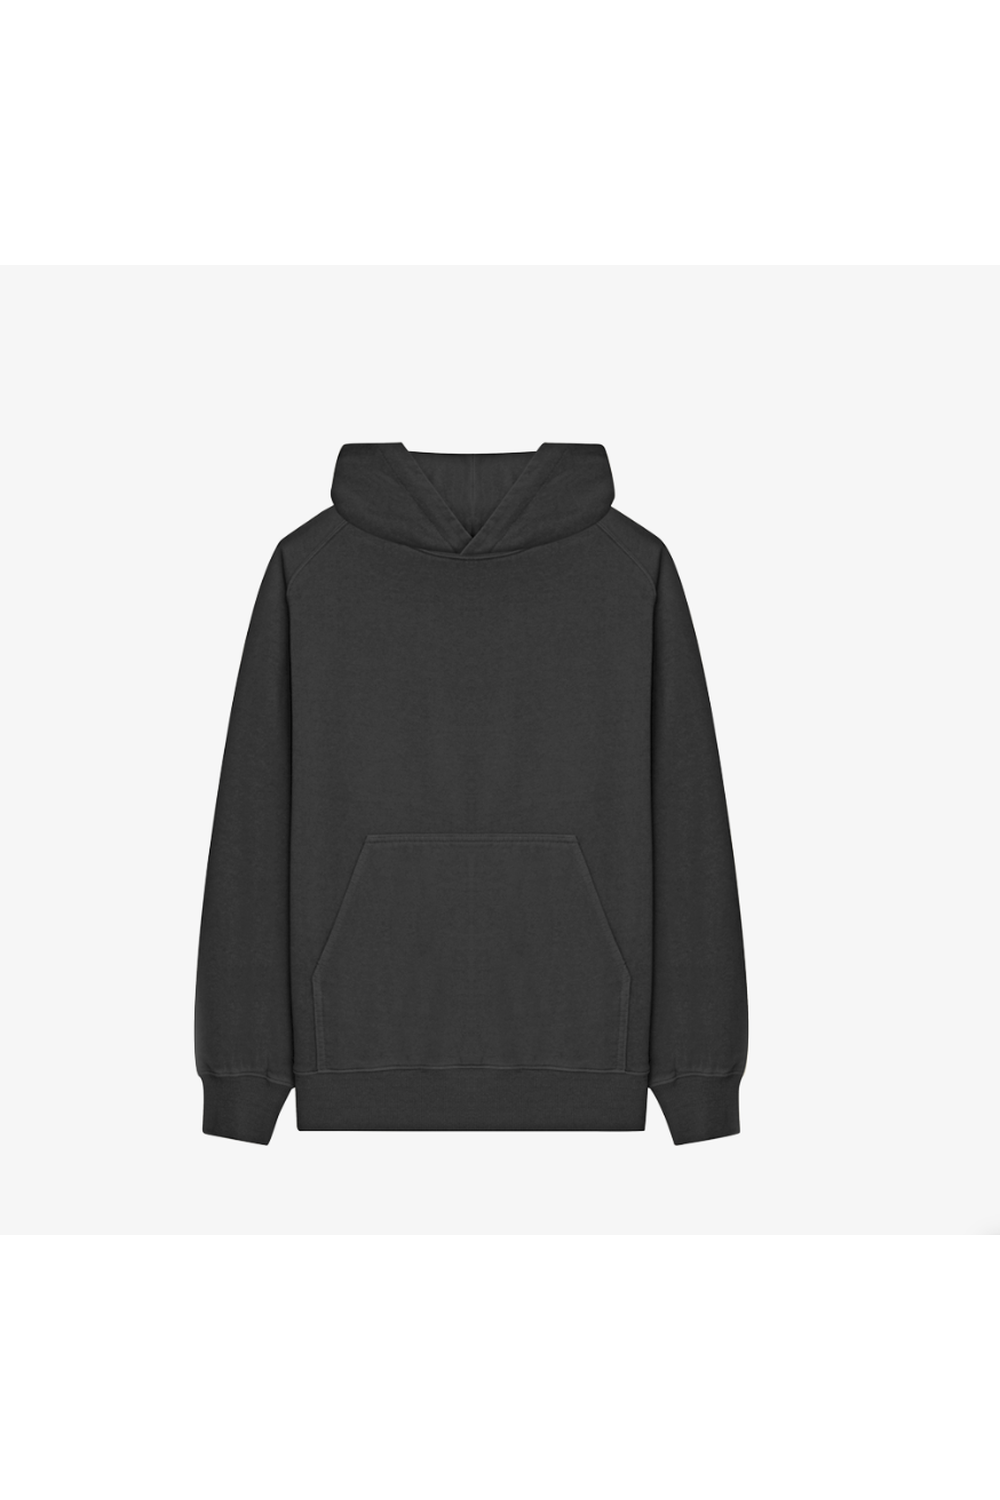 Fleece Hood / Vintage Black | COMMONERS | Mad About The Boy